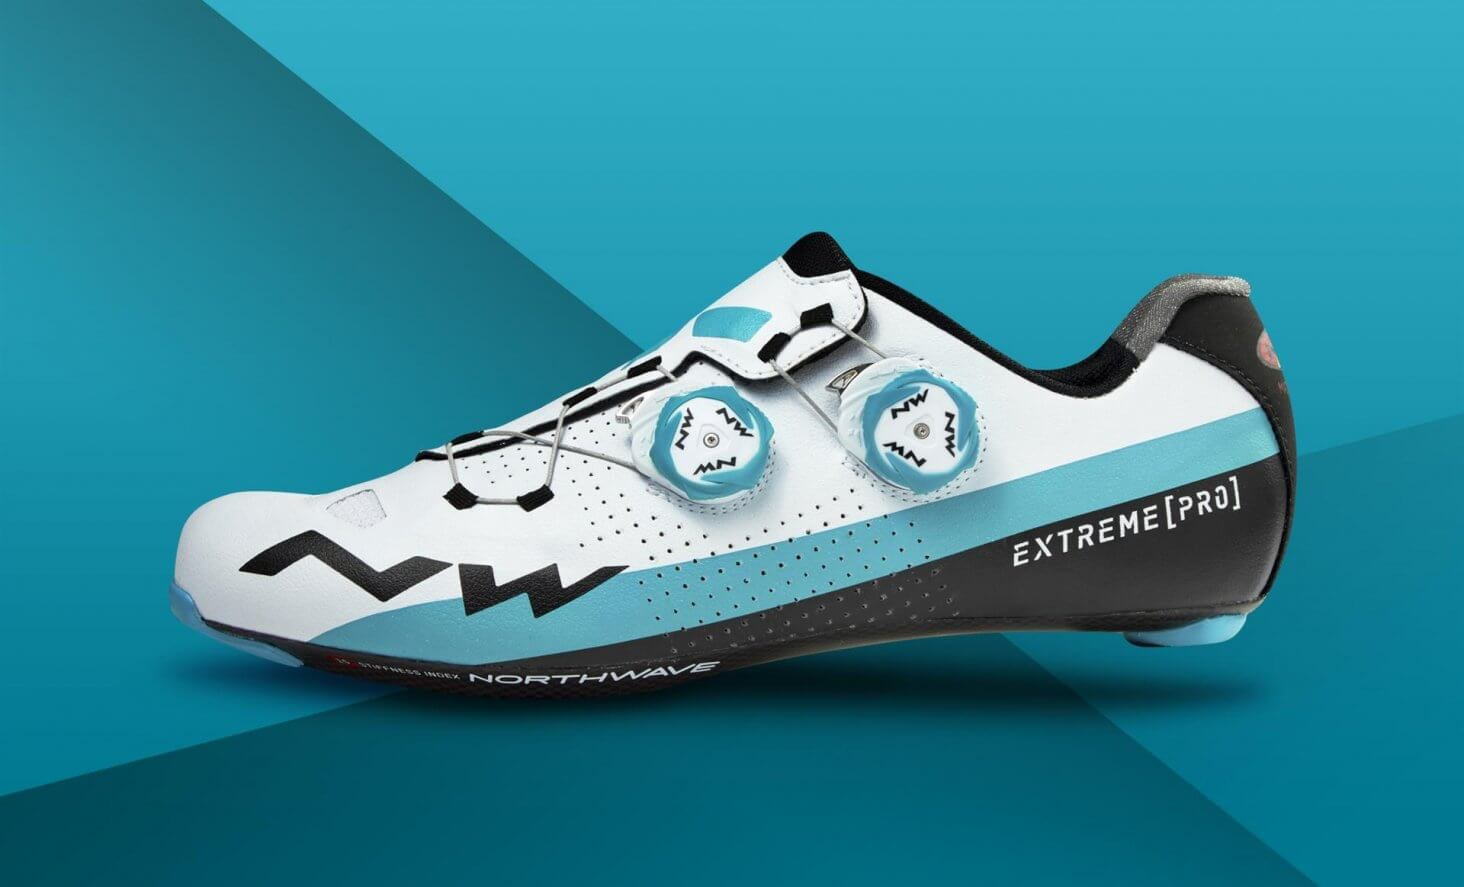 Northwave - A special edition Extreme Pro dedicated to Team Astana premieres at Taipei Cycle